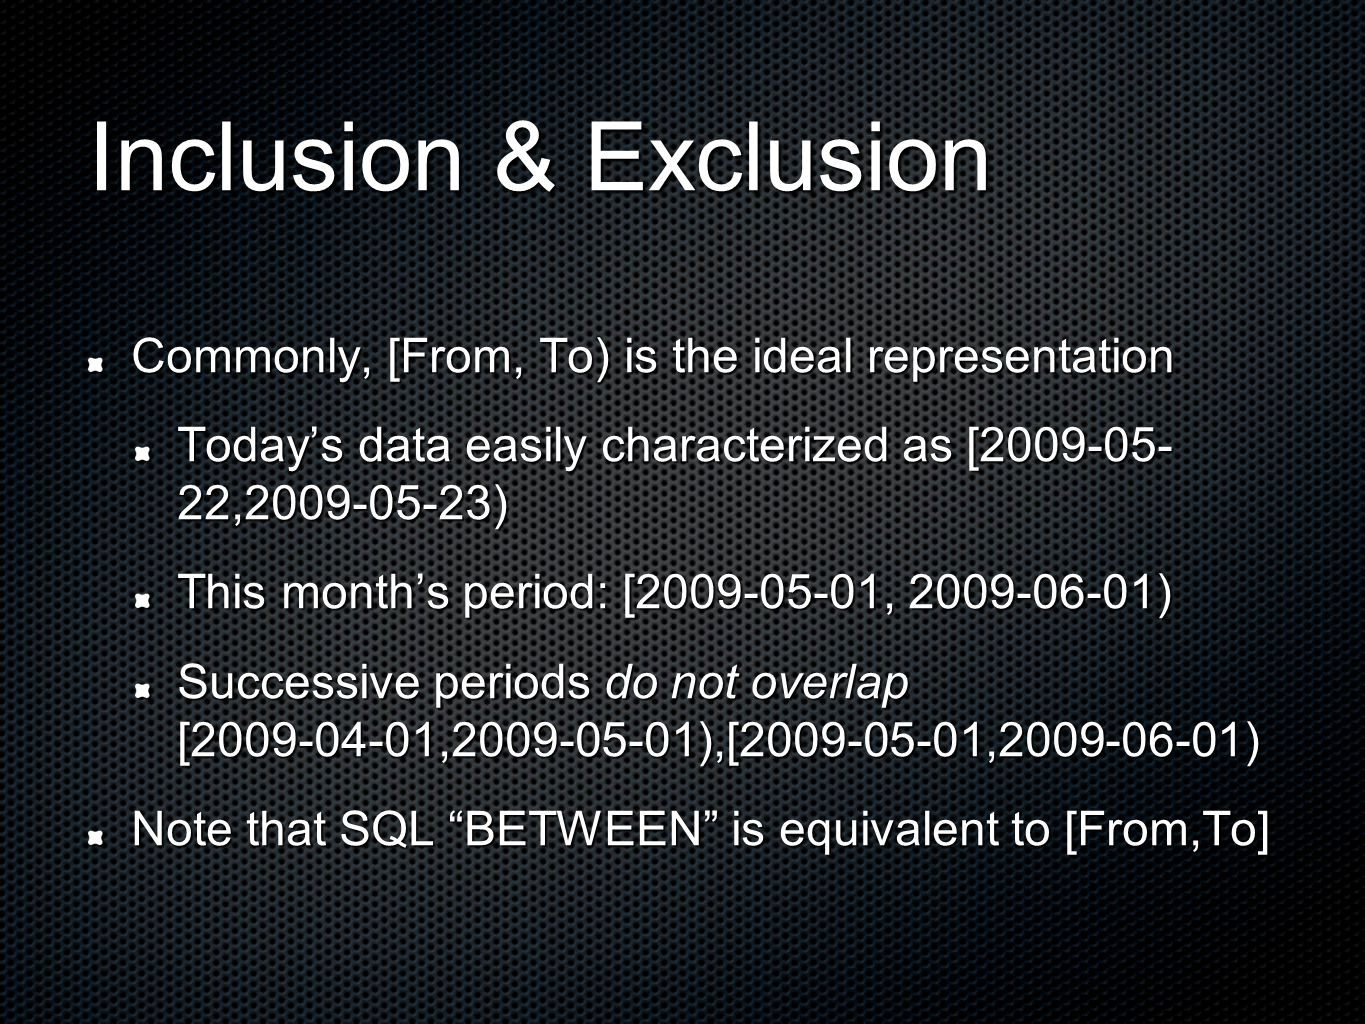 Inclusion & Exclusion Commonly, [From, To) is the ideal representation Today's data easily characterized as [2009-05- 22,2009-05-23) This month's period: [2009-05-01, 2009-06-01) Successive periods do not overlap [2009-04-01,2009-05-01),[2009-05-01,2009-06-01) Note that SQL BETWEEN is equivalent to [From,To]